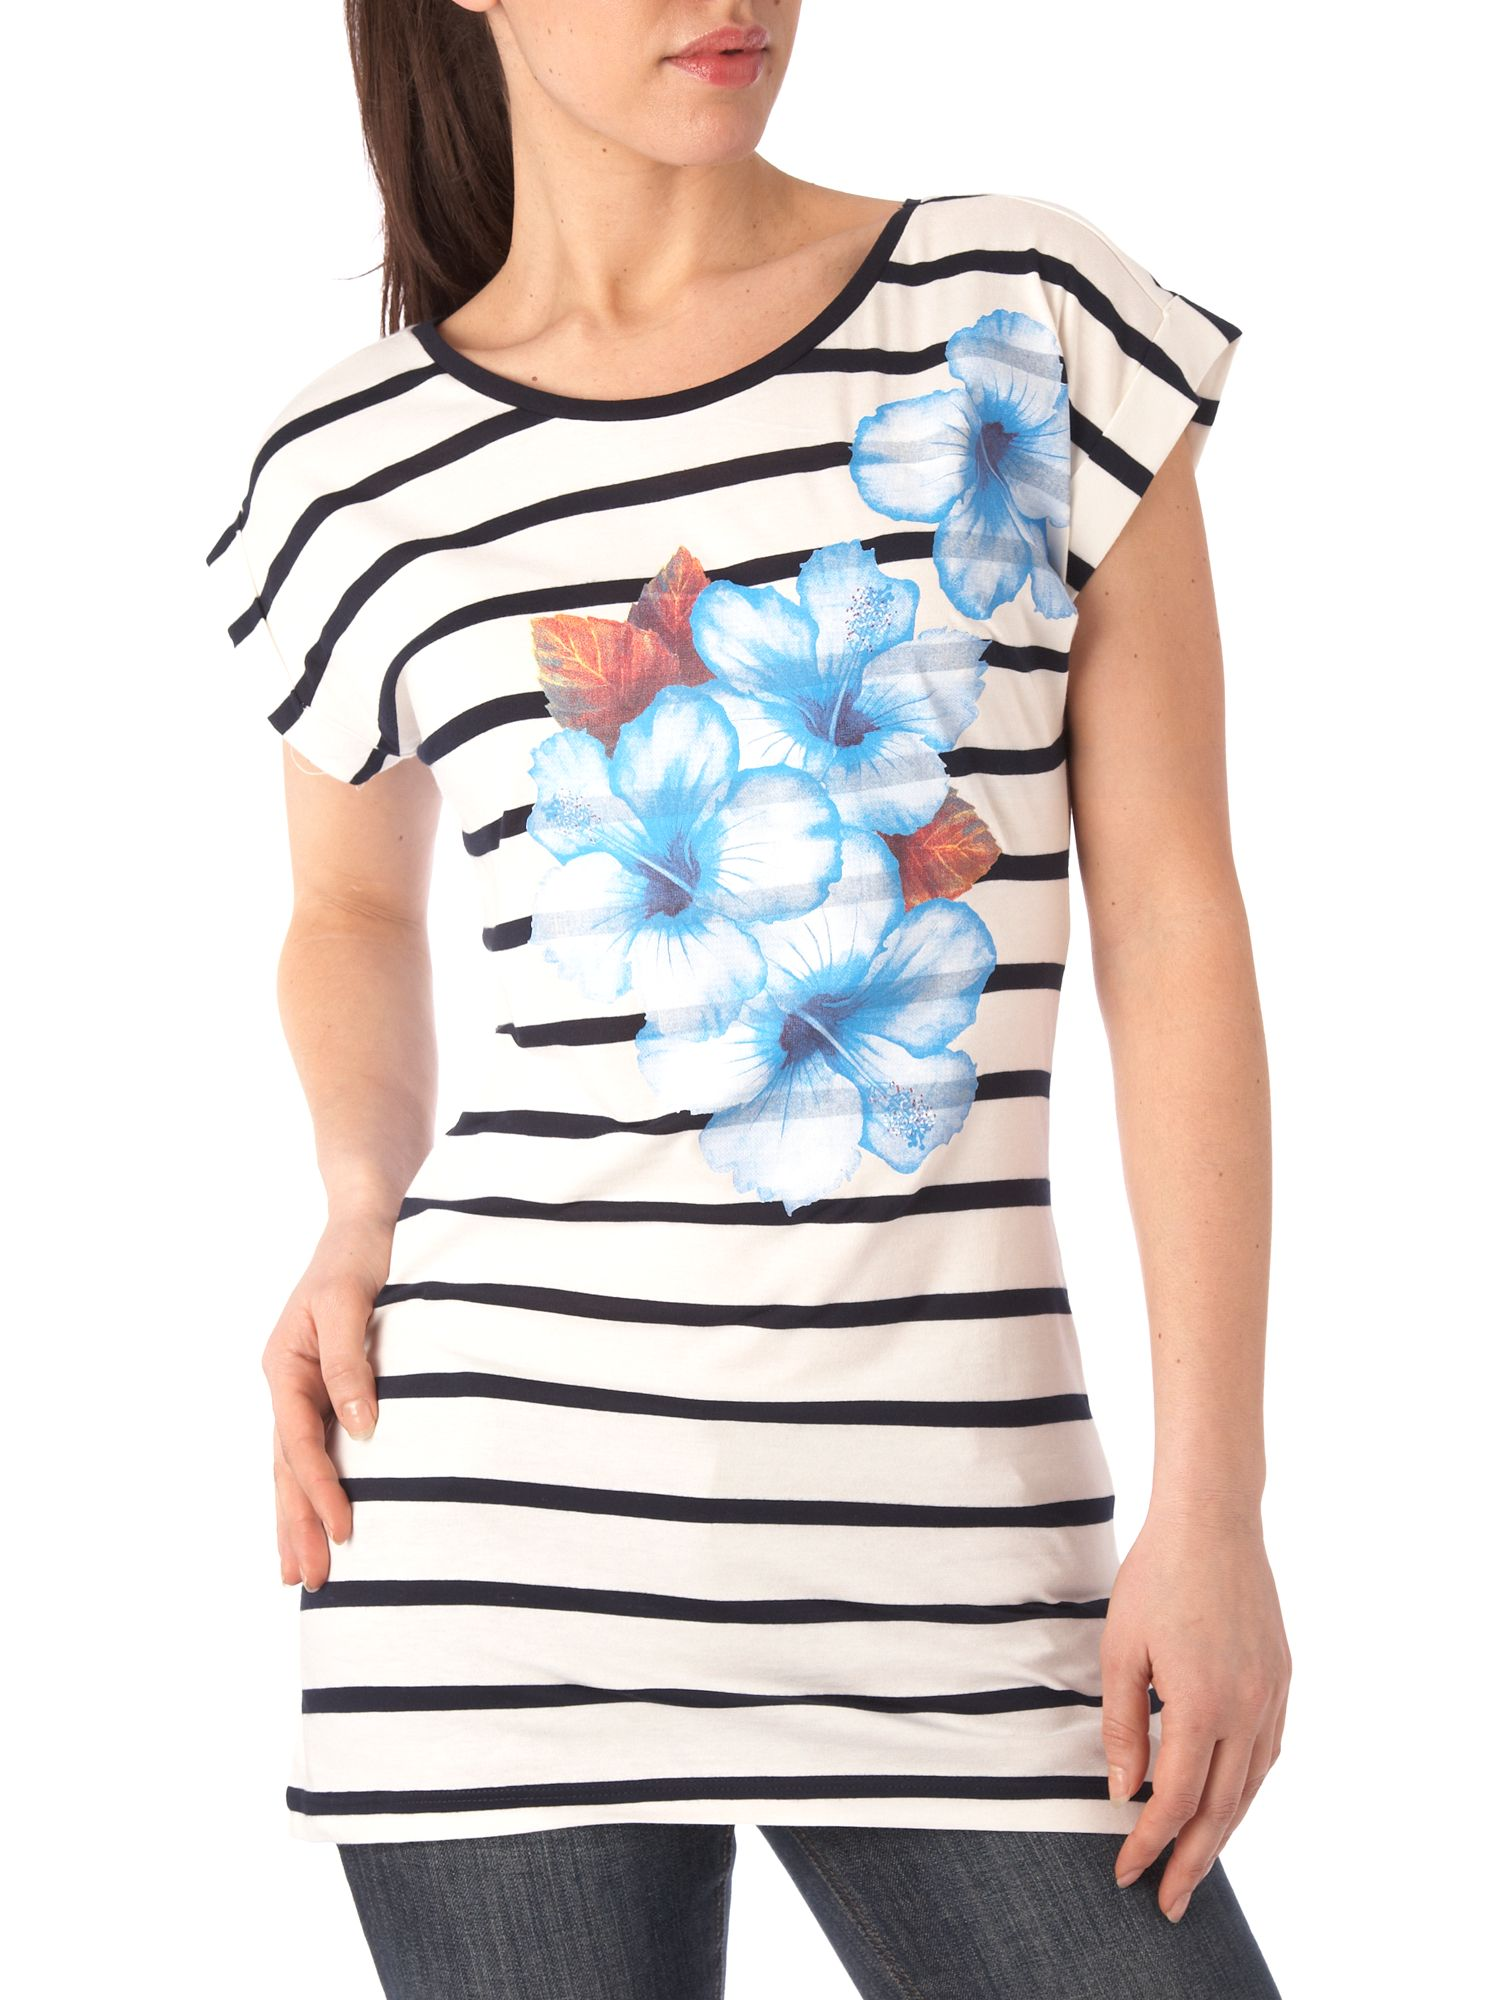 Therapy Floral stripe placement t-shirt product image